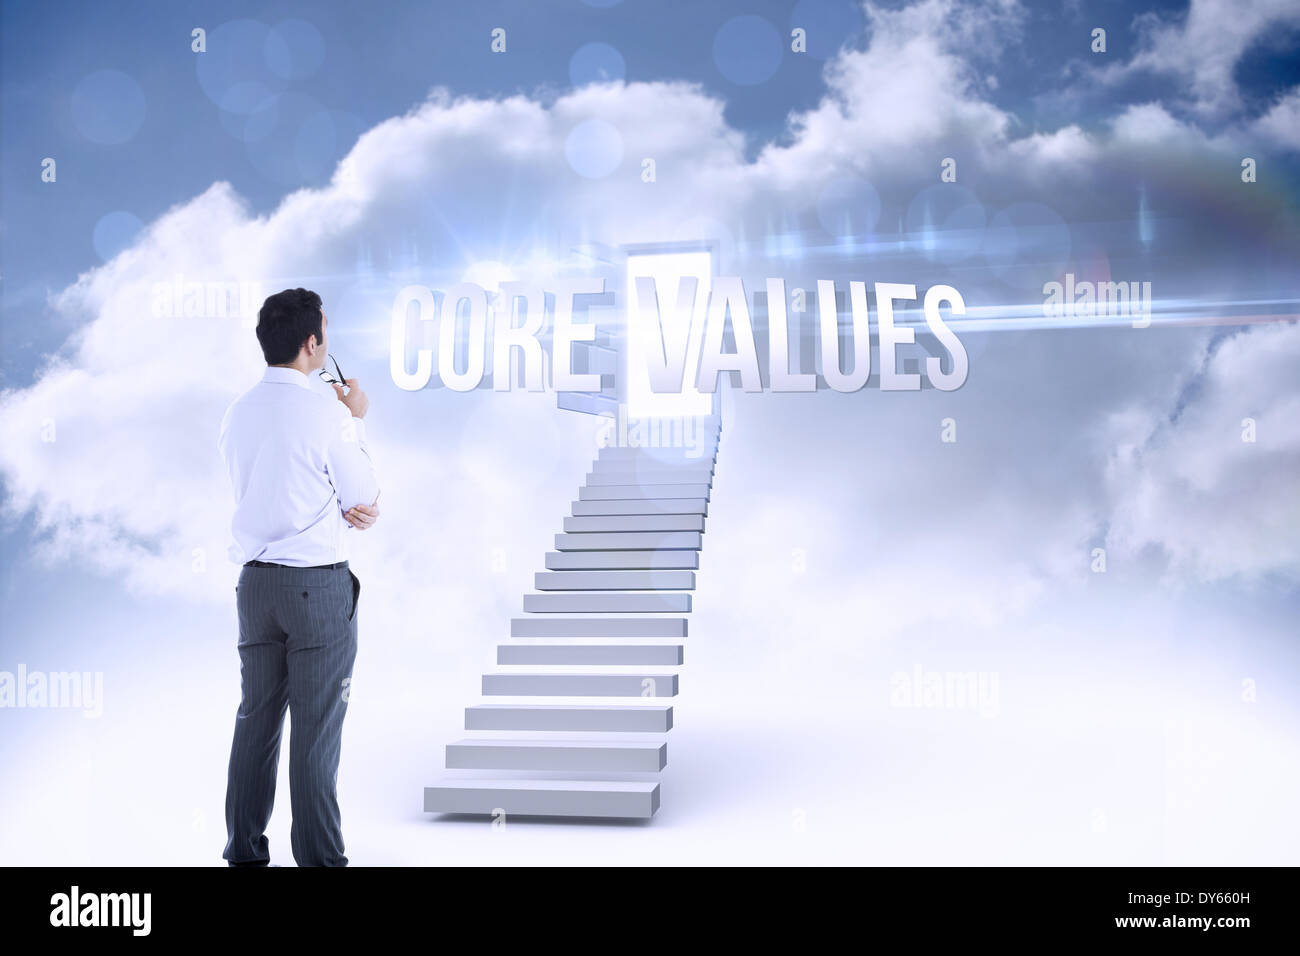 Core values against open door at top of stairs in the sky - Stock Image